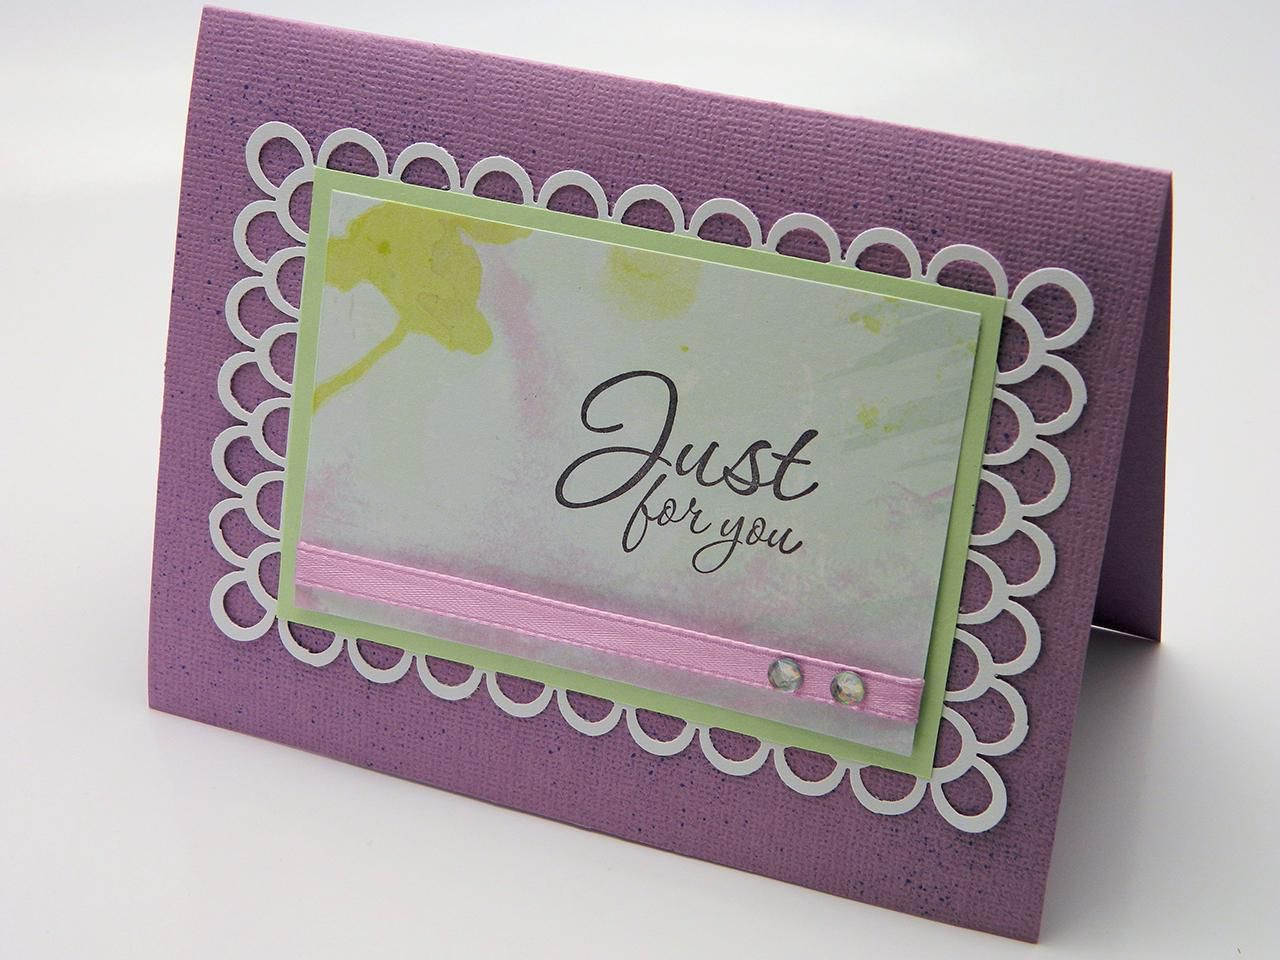 sentiments and greetings ideas for handmade cards